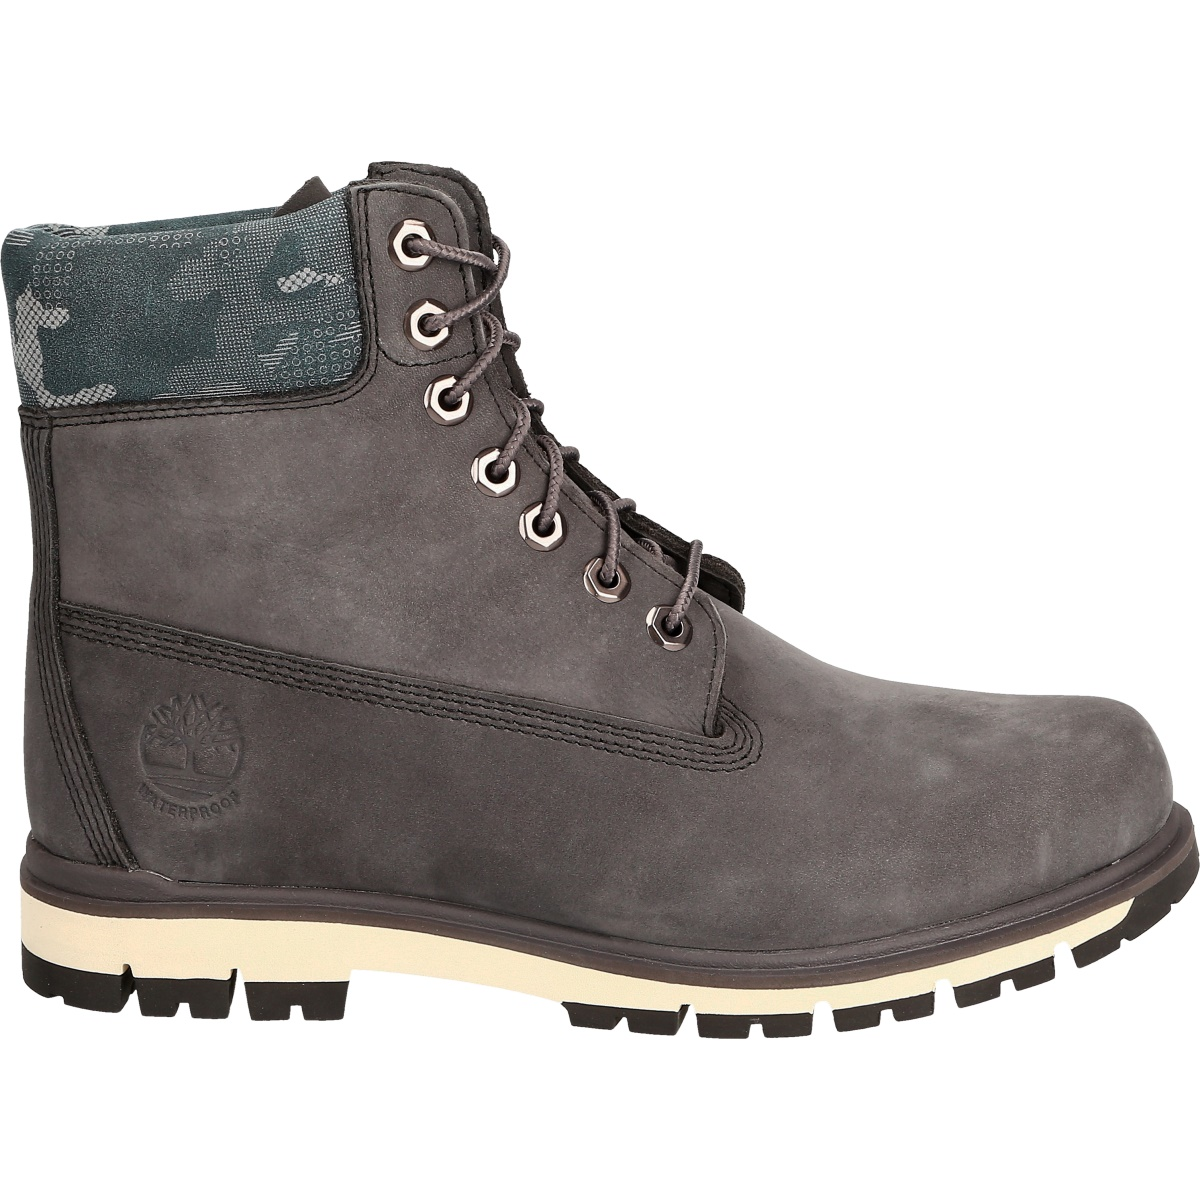 Timberland #A1UNY Men's shoes Ankle Boots buy shoes at our